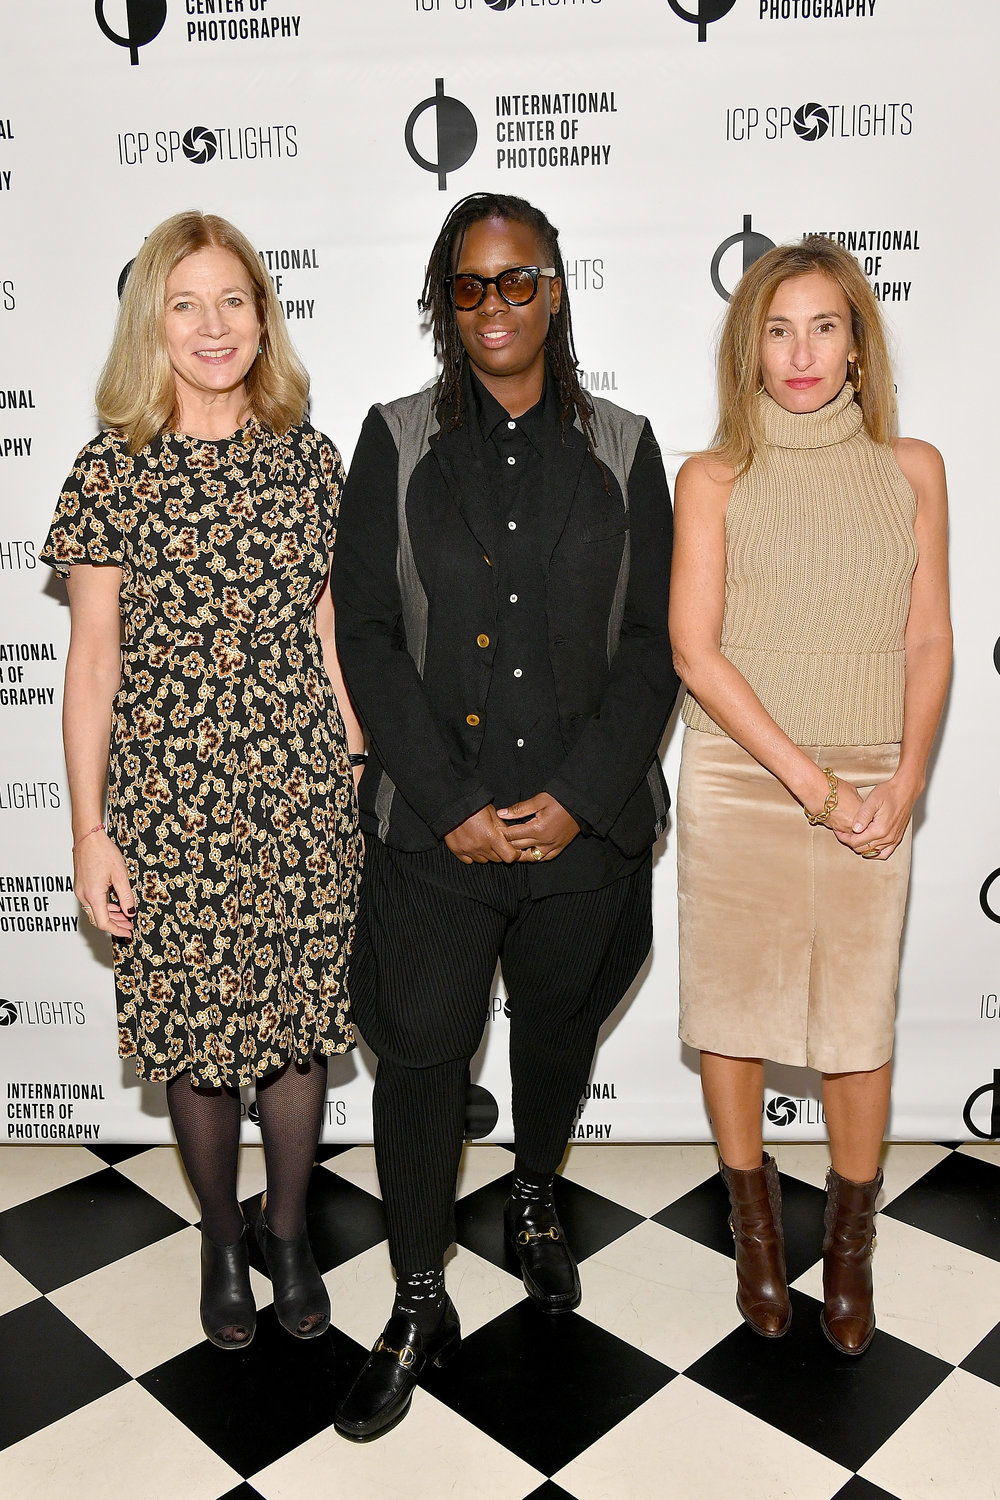 Peggy Anderson, Mickalene Thomas and Debby Hymowitz attend the ICP Spotlights Luncheon Honoring Mickalene Thomas ©Getty Images for ICP